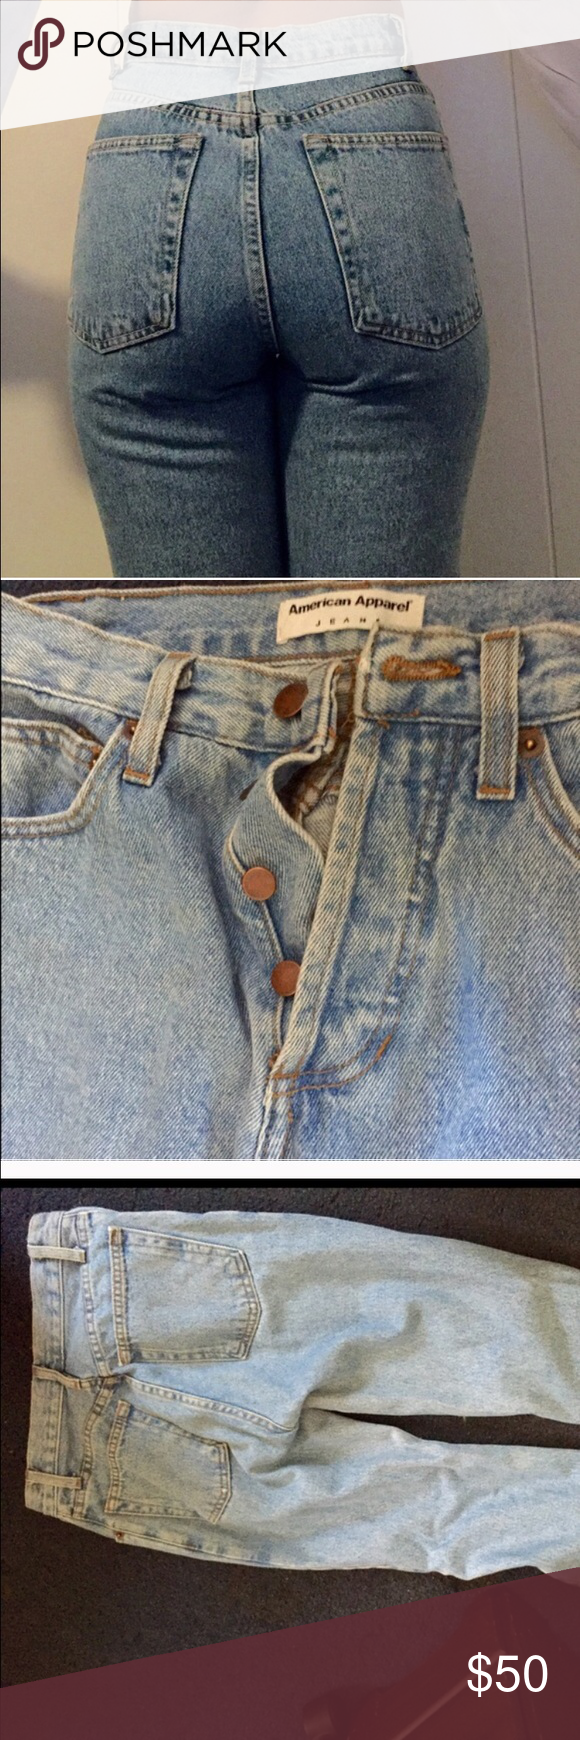 Vintage high waisted mom jeans AA American apparel Vintage high waisted mom jeans AA (American apparel ) size 25 perfect condition doesn't fit me anymore American Apparel Jeans